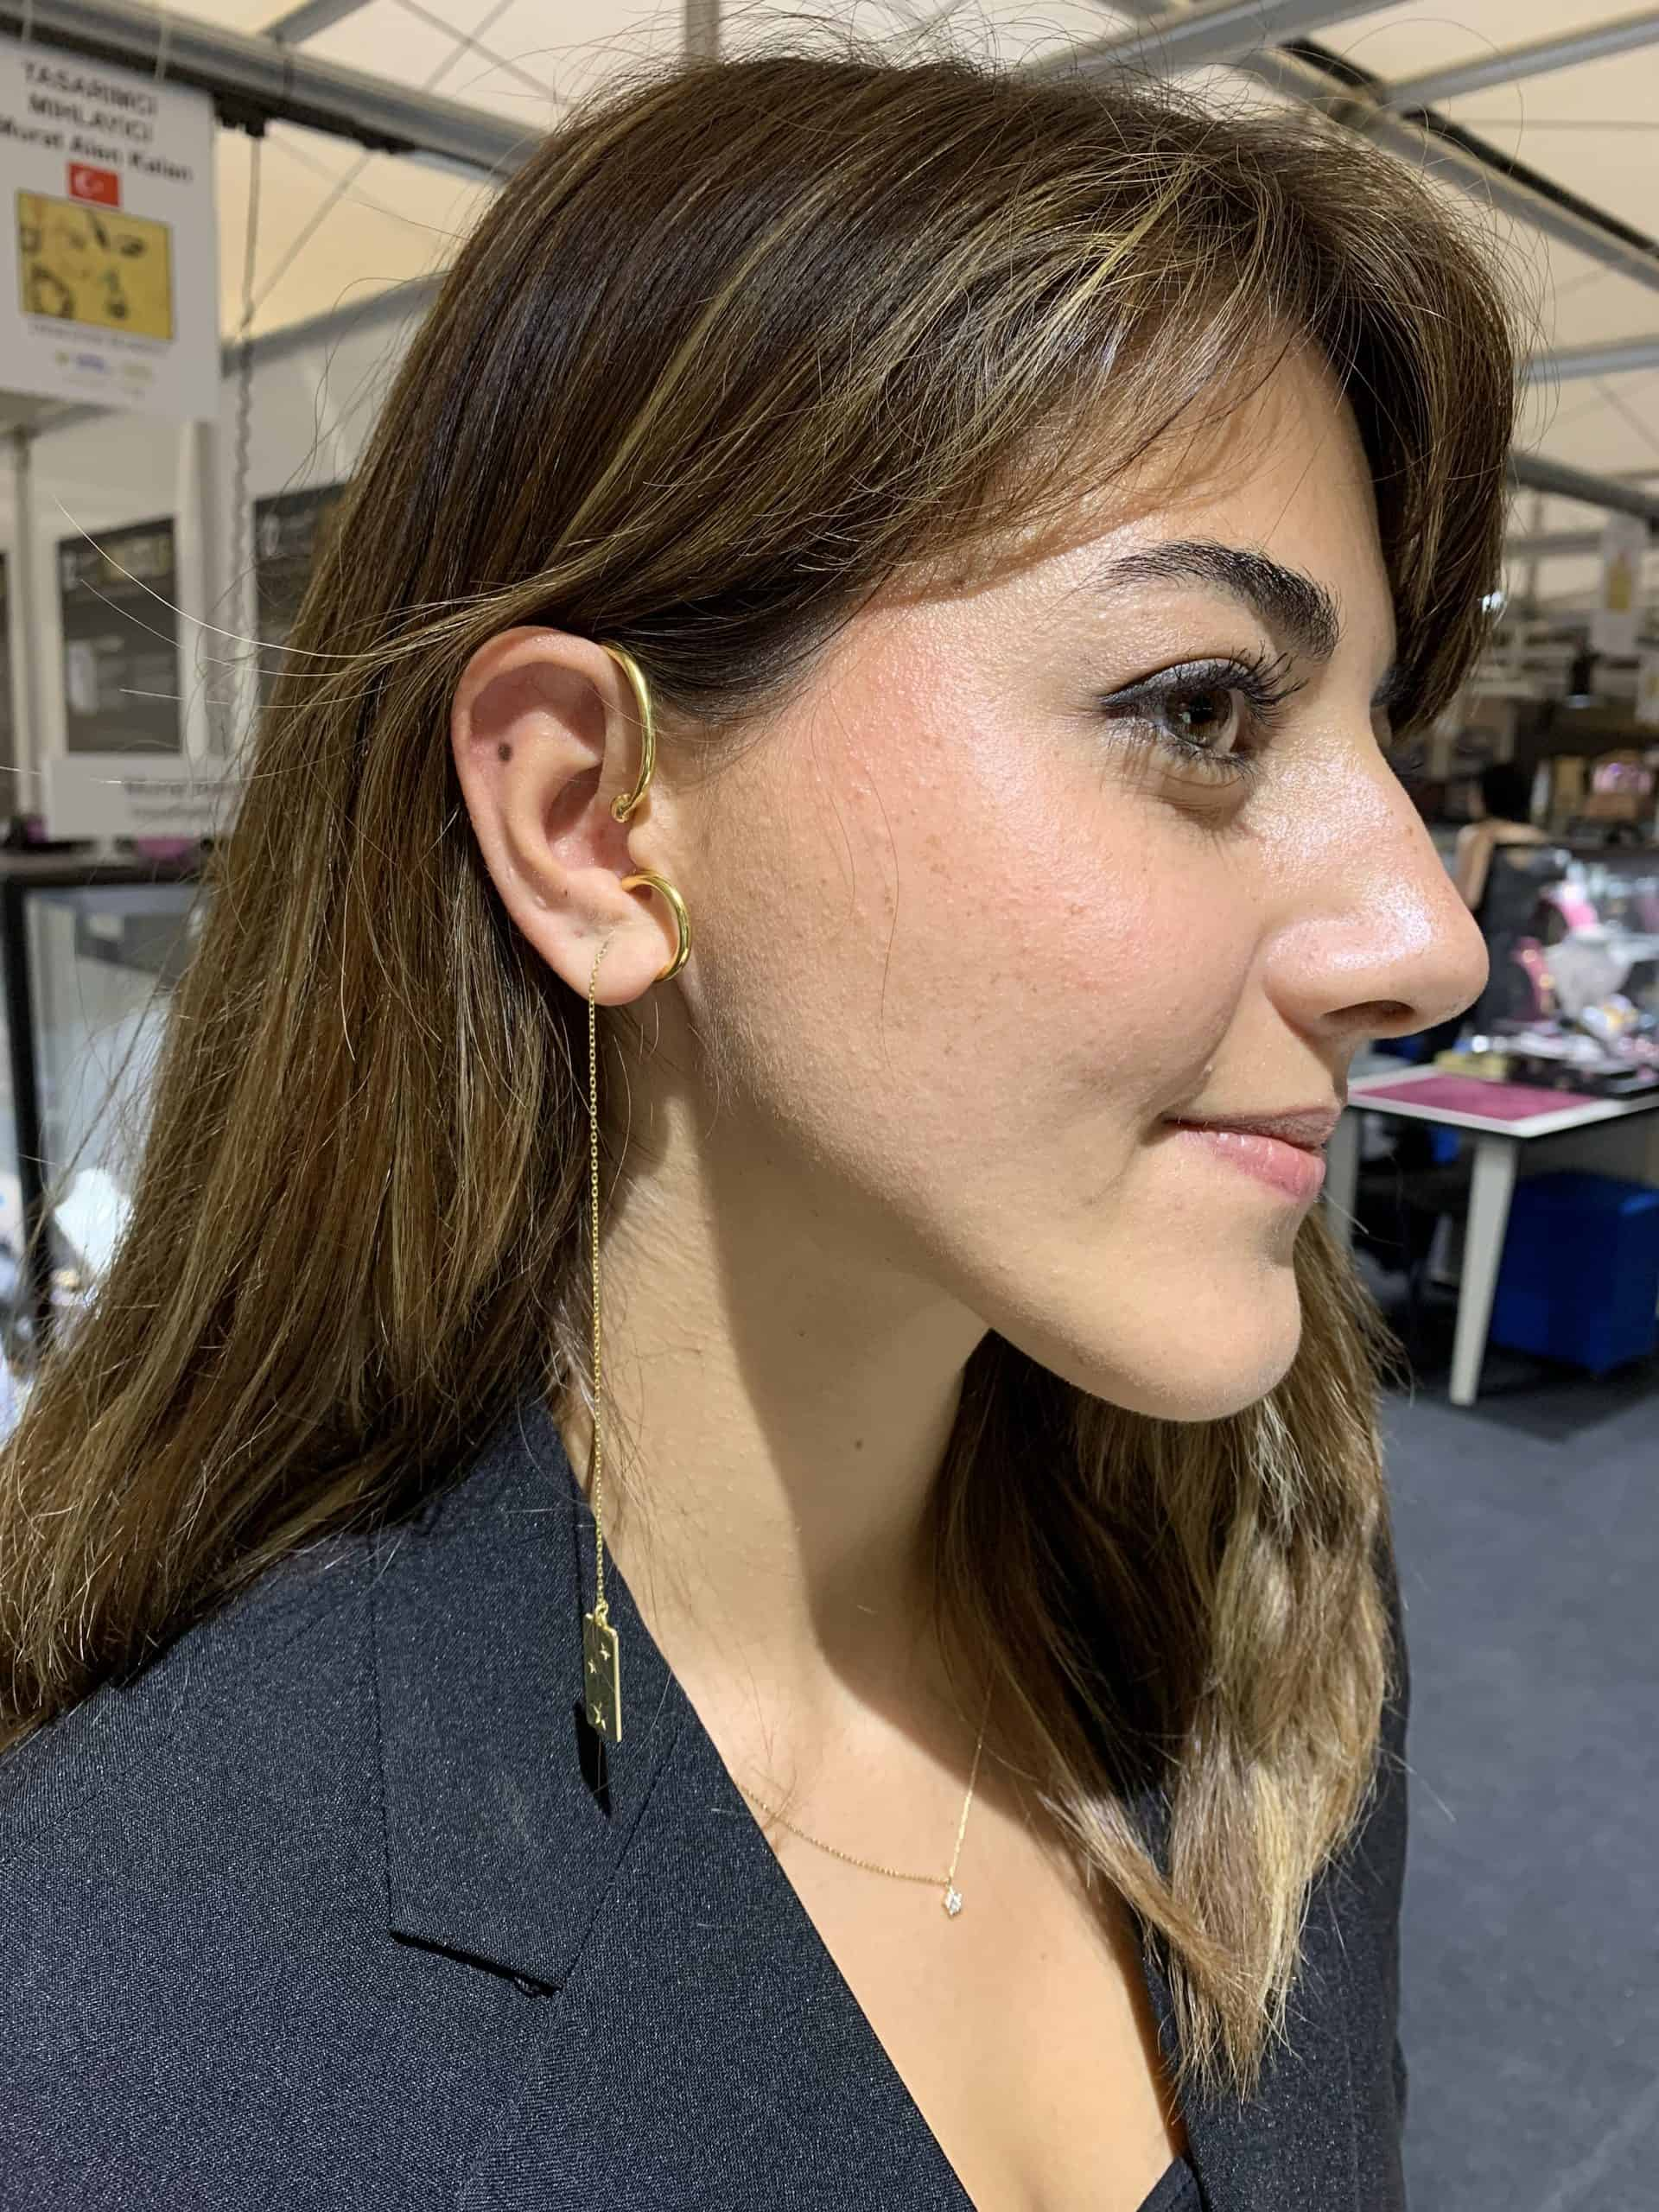 Asya Ozkan shows off her silver ear cuff at the Istanbul Jewelry Show